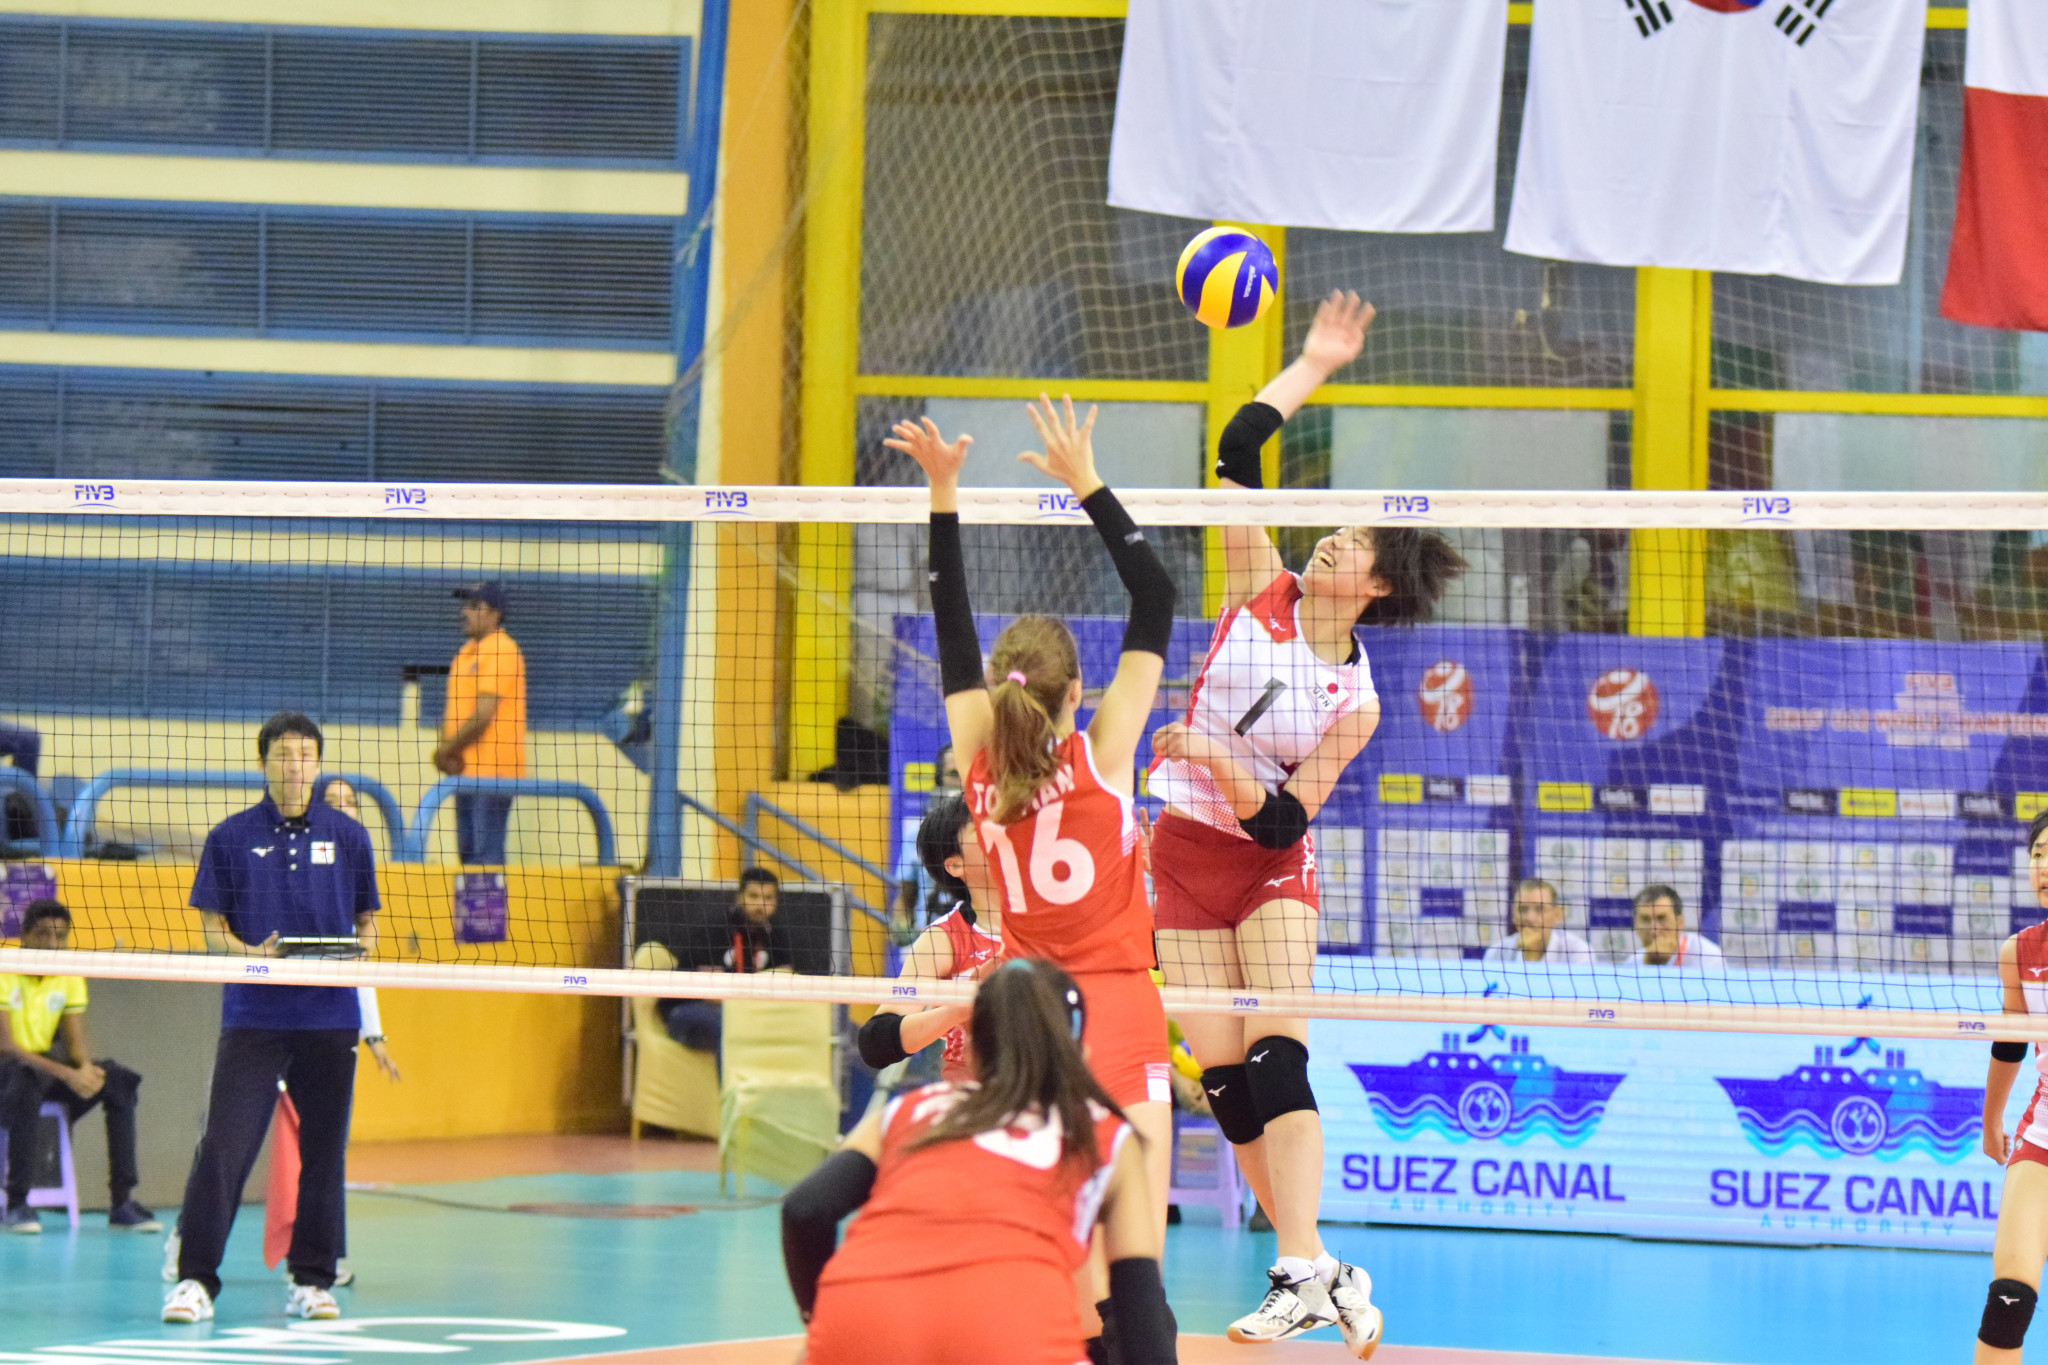 Japan came from two sets down to defeat Turkey in their Pool D match in Cairo ©FIVB